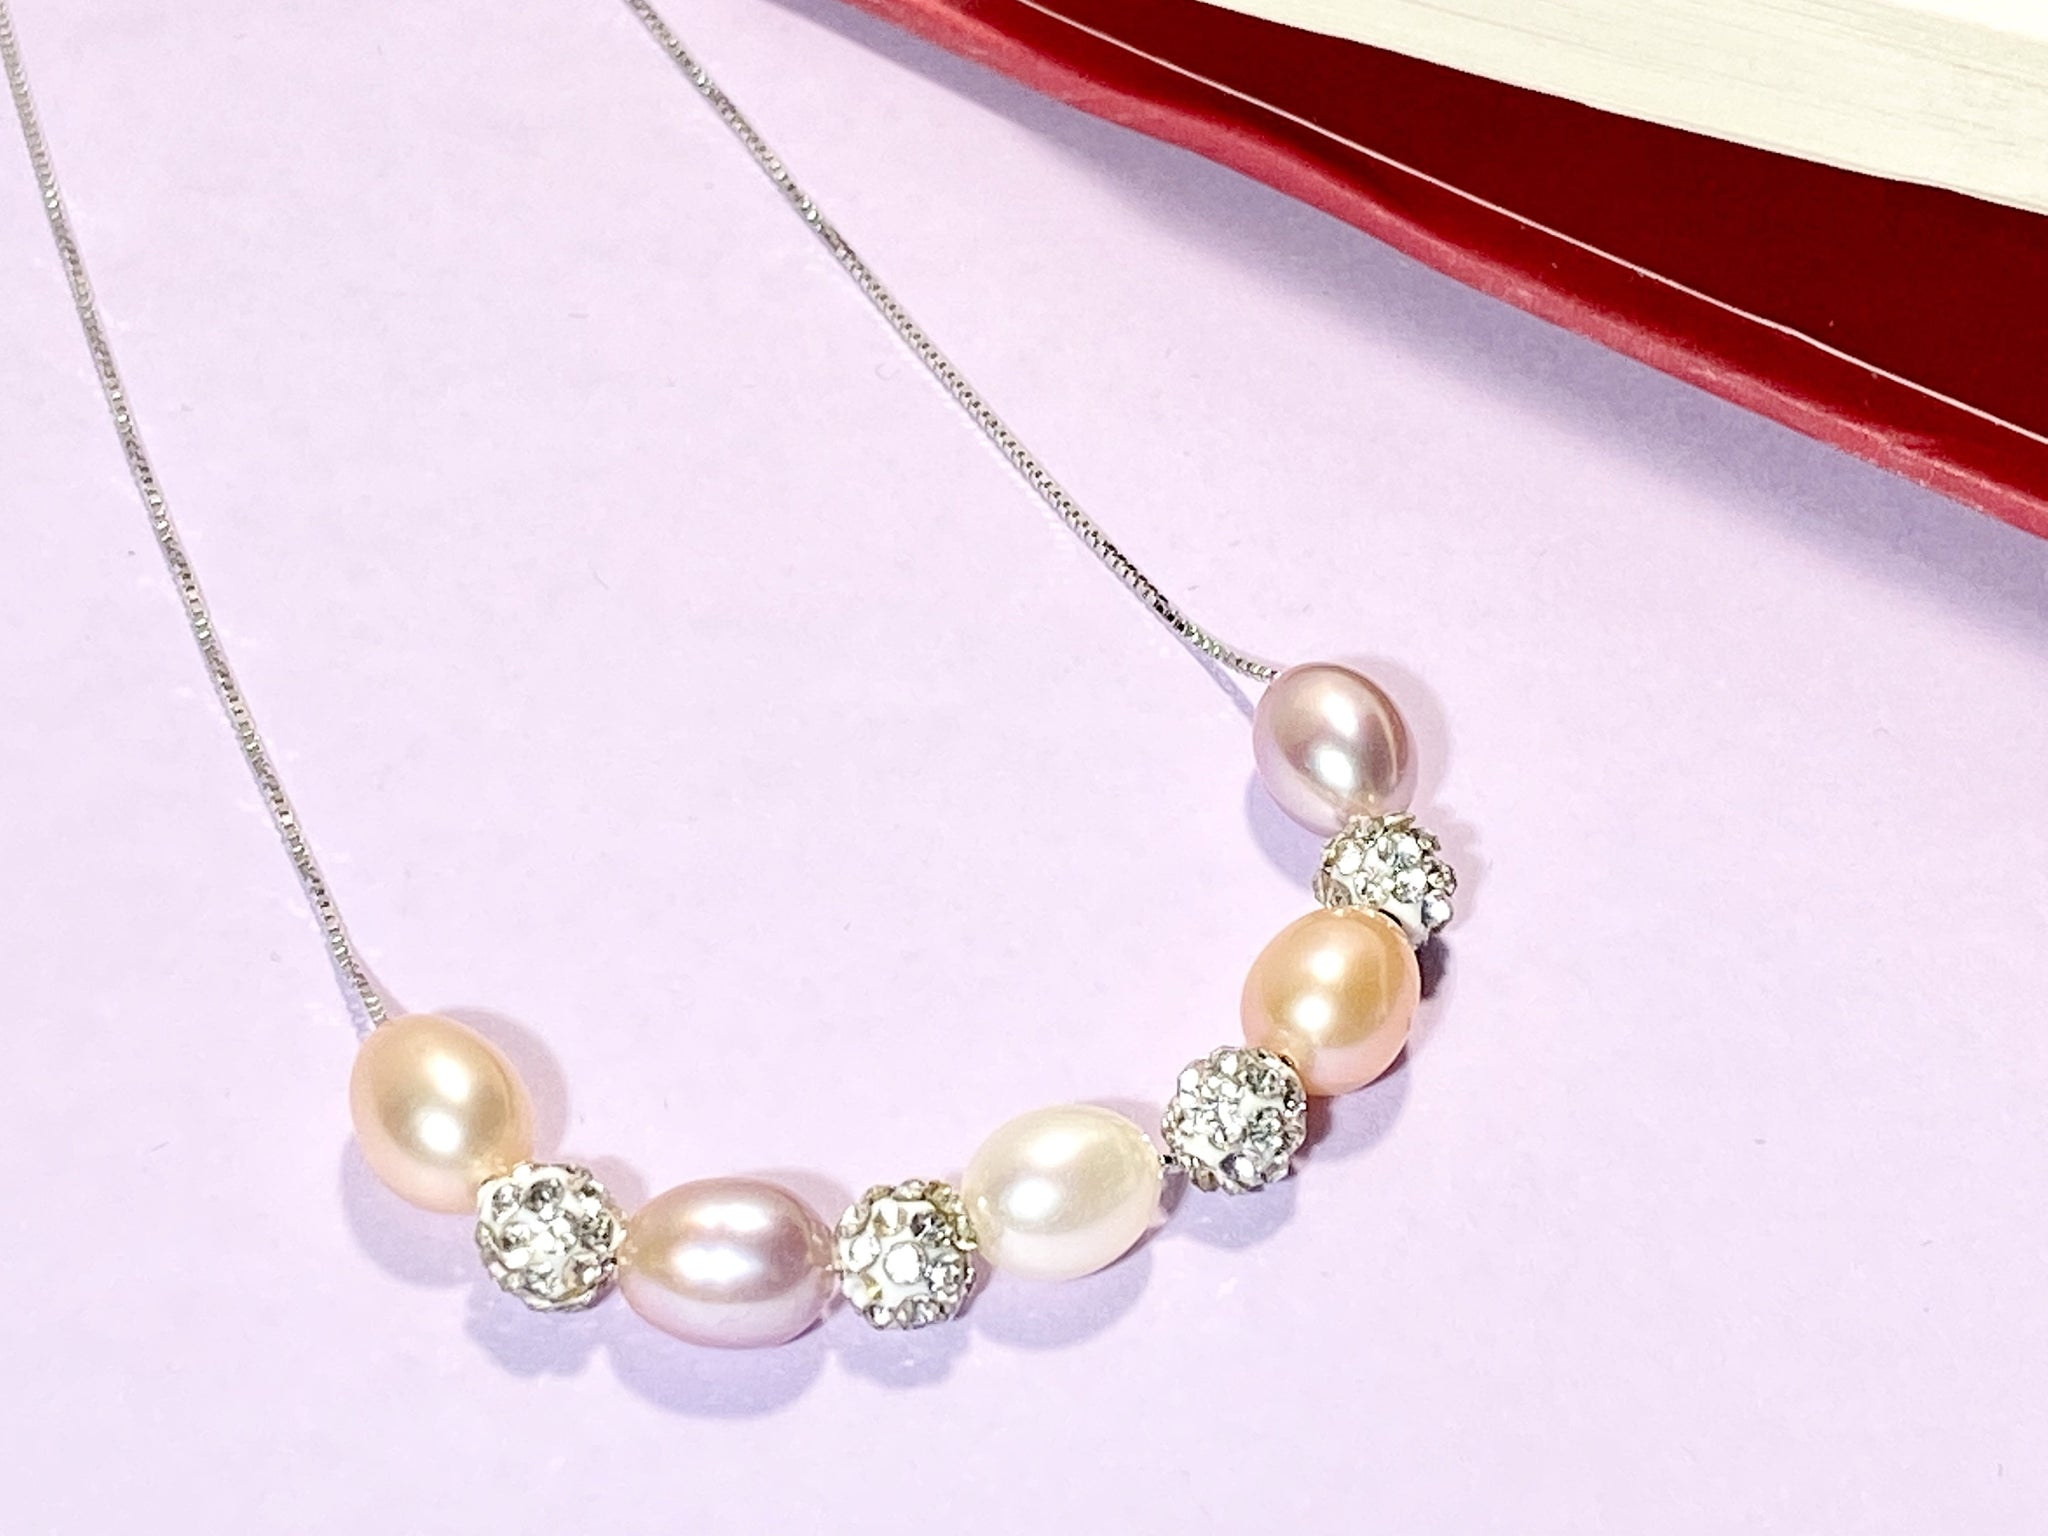 DIFFERENT BEAUTIES - Love Letter Jewelry - 925 Sterling Silver Jewelry - Organic Pearl Jewelry